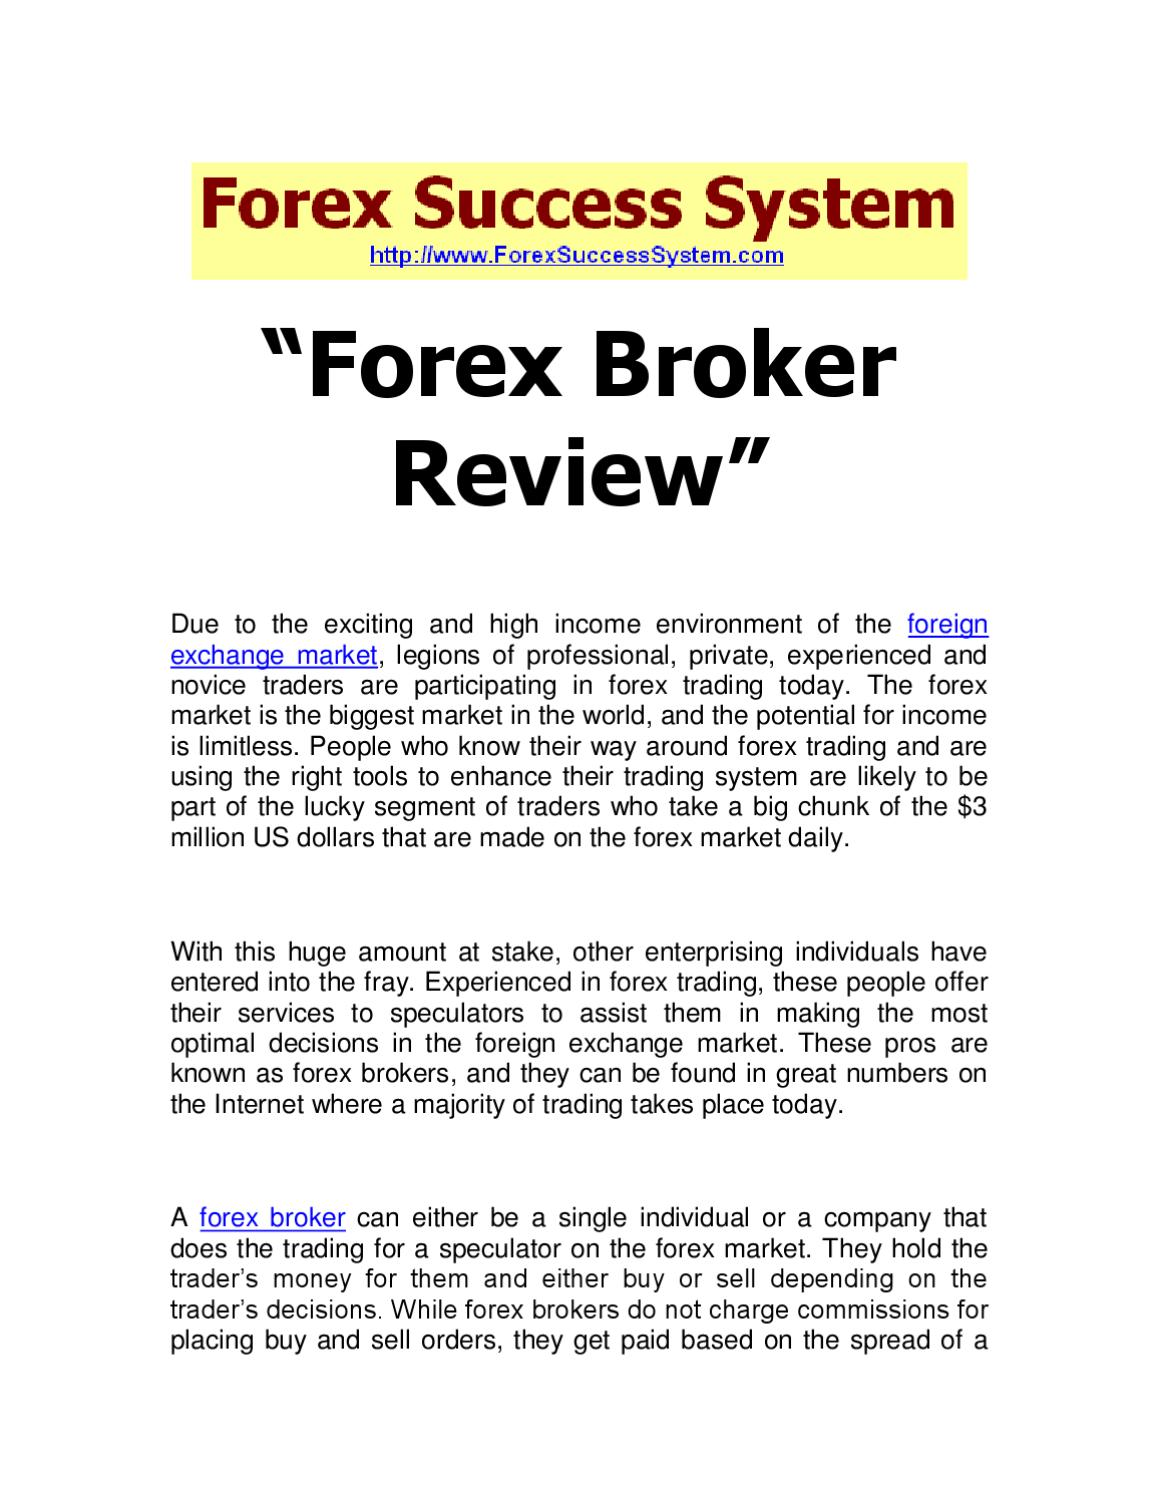 Forex company reviews